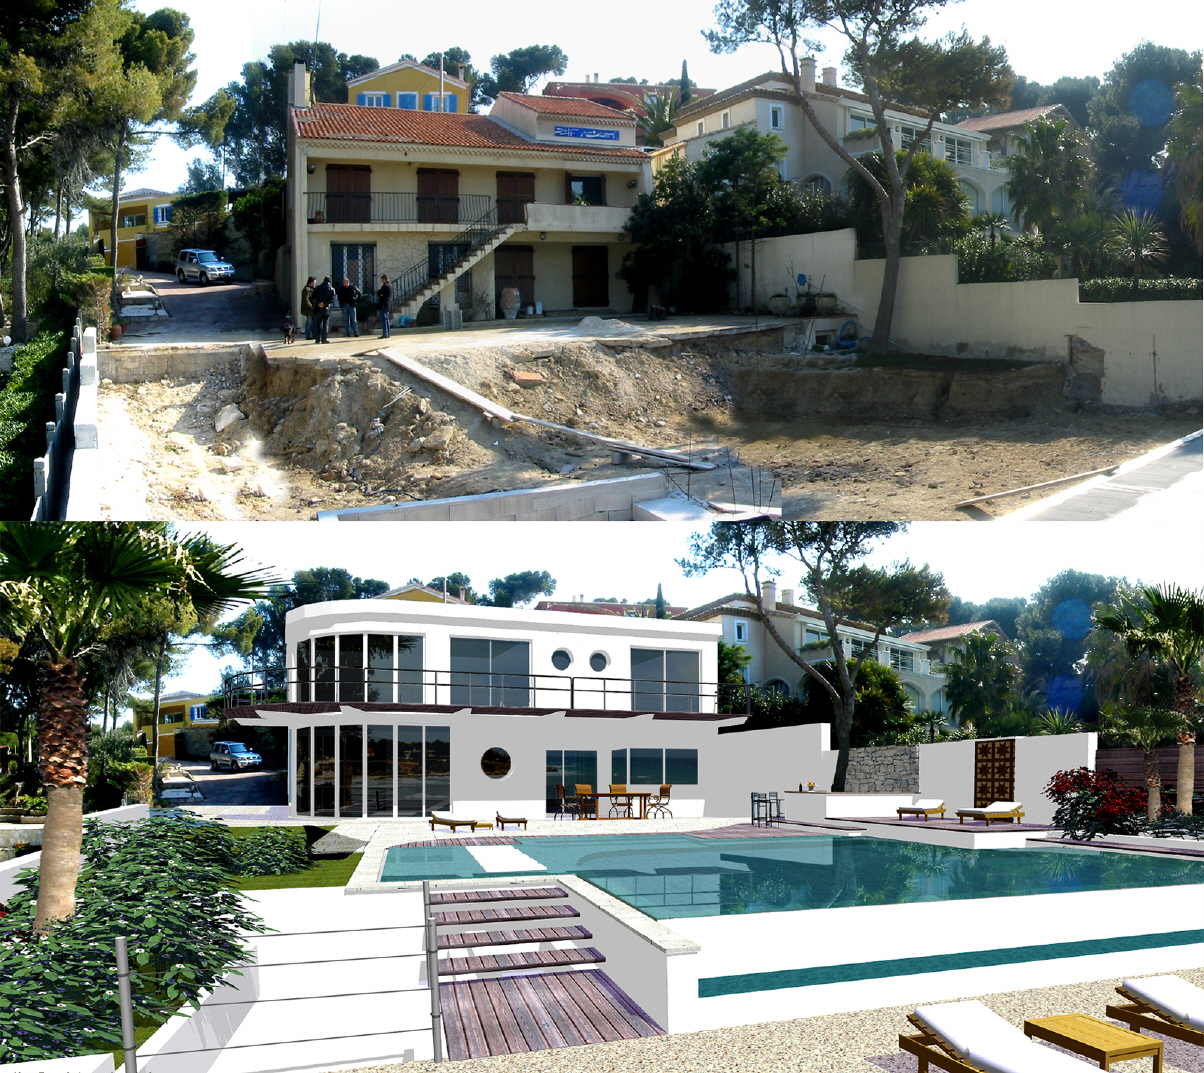 relooking piscine architecte piscine d coration piscine